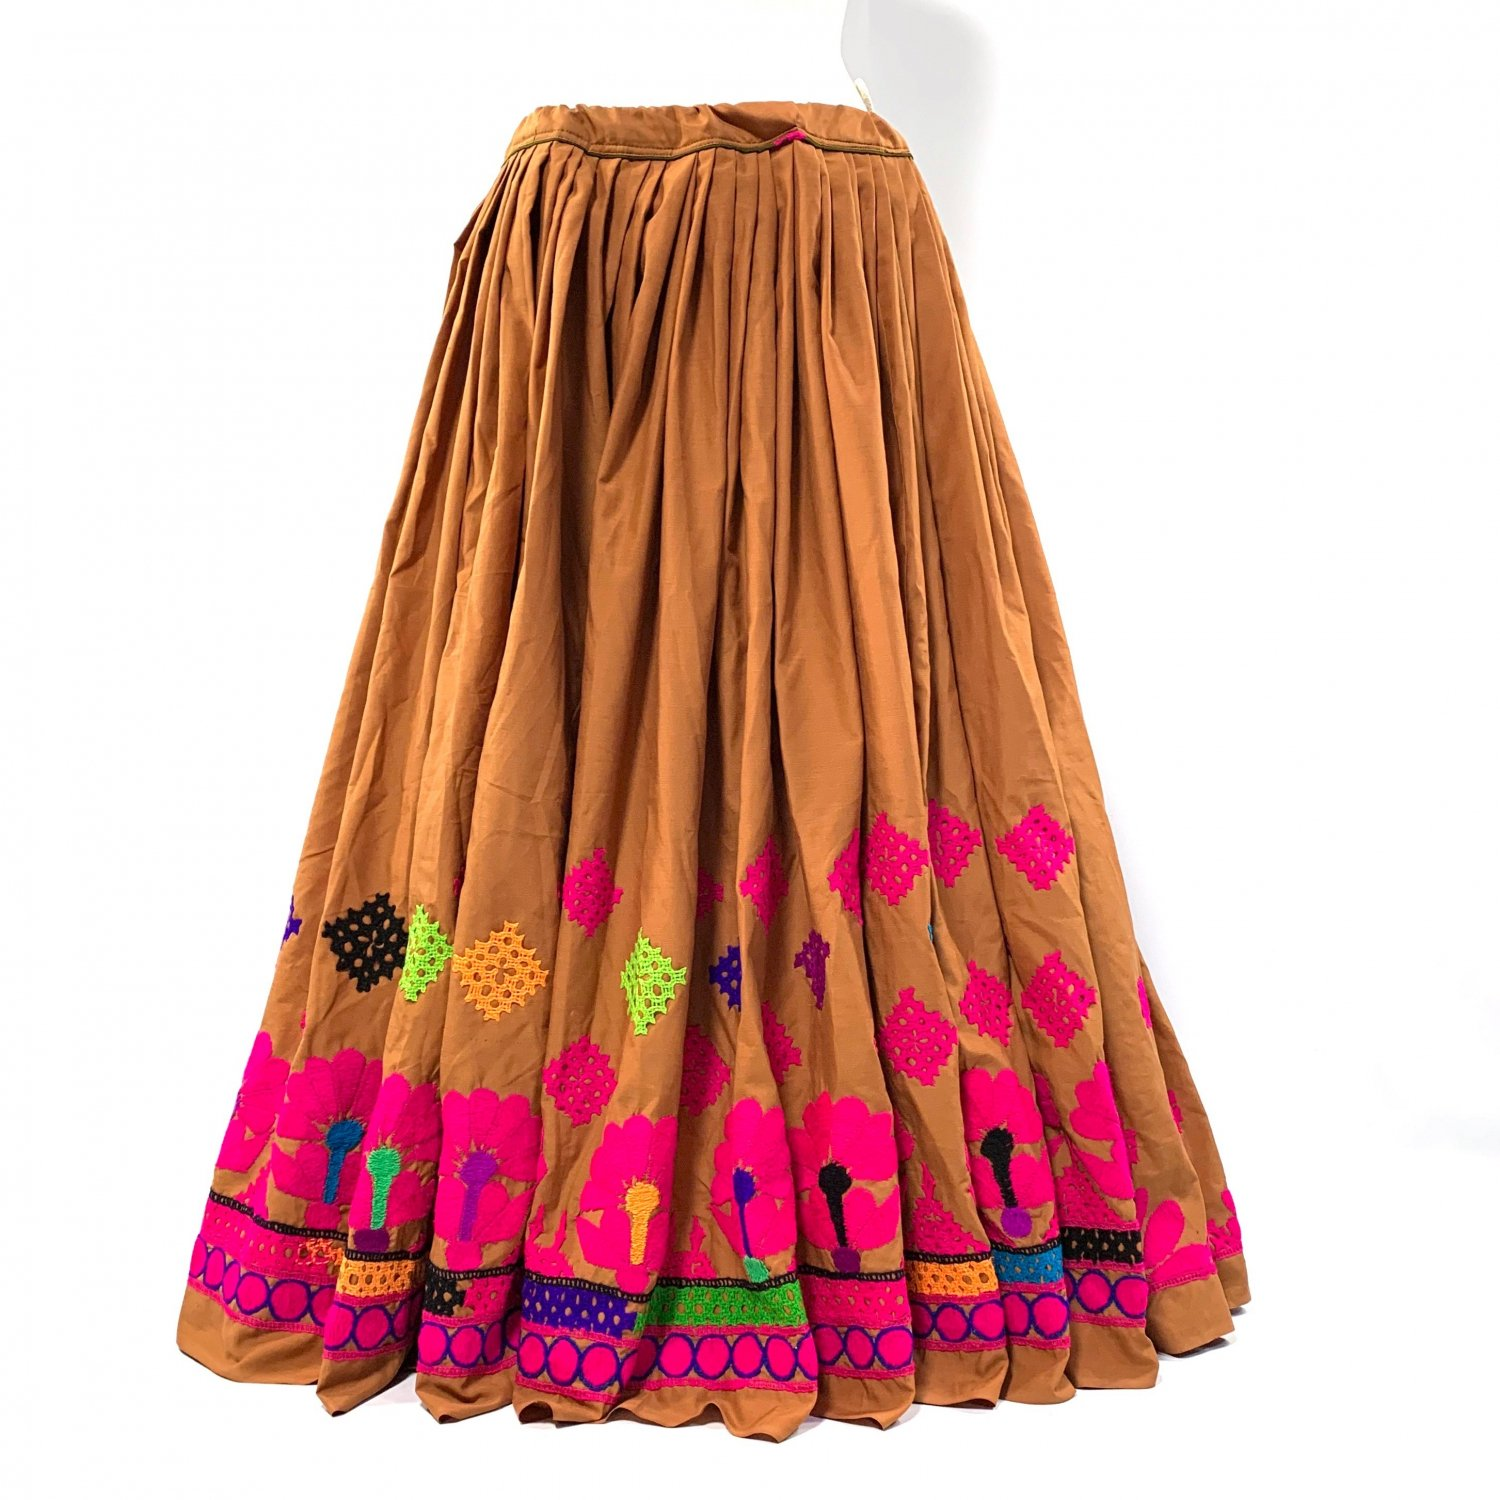 <img class='new_mark_img1' src='https://img.shop-pro.jp/img/new/icons1.gif' style='border:none;display:inline;margin:0px;padding:0px;width:auto;' />Kutch gypsy skirt #40 *vintage * カッチ刺繍スカート バンジャラ《オーカー》